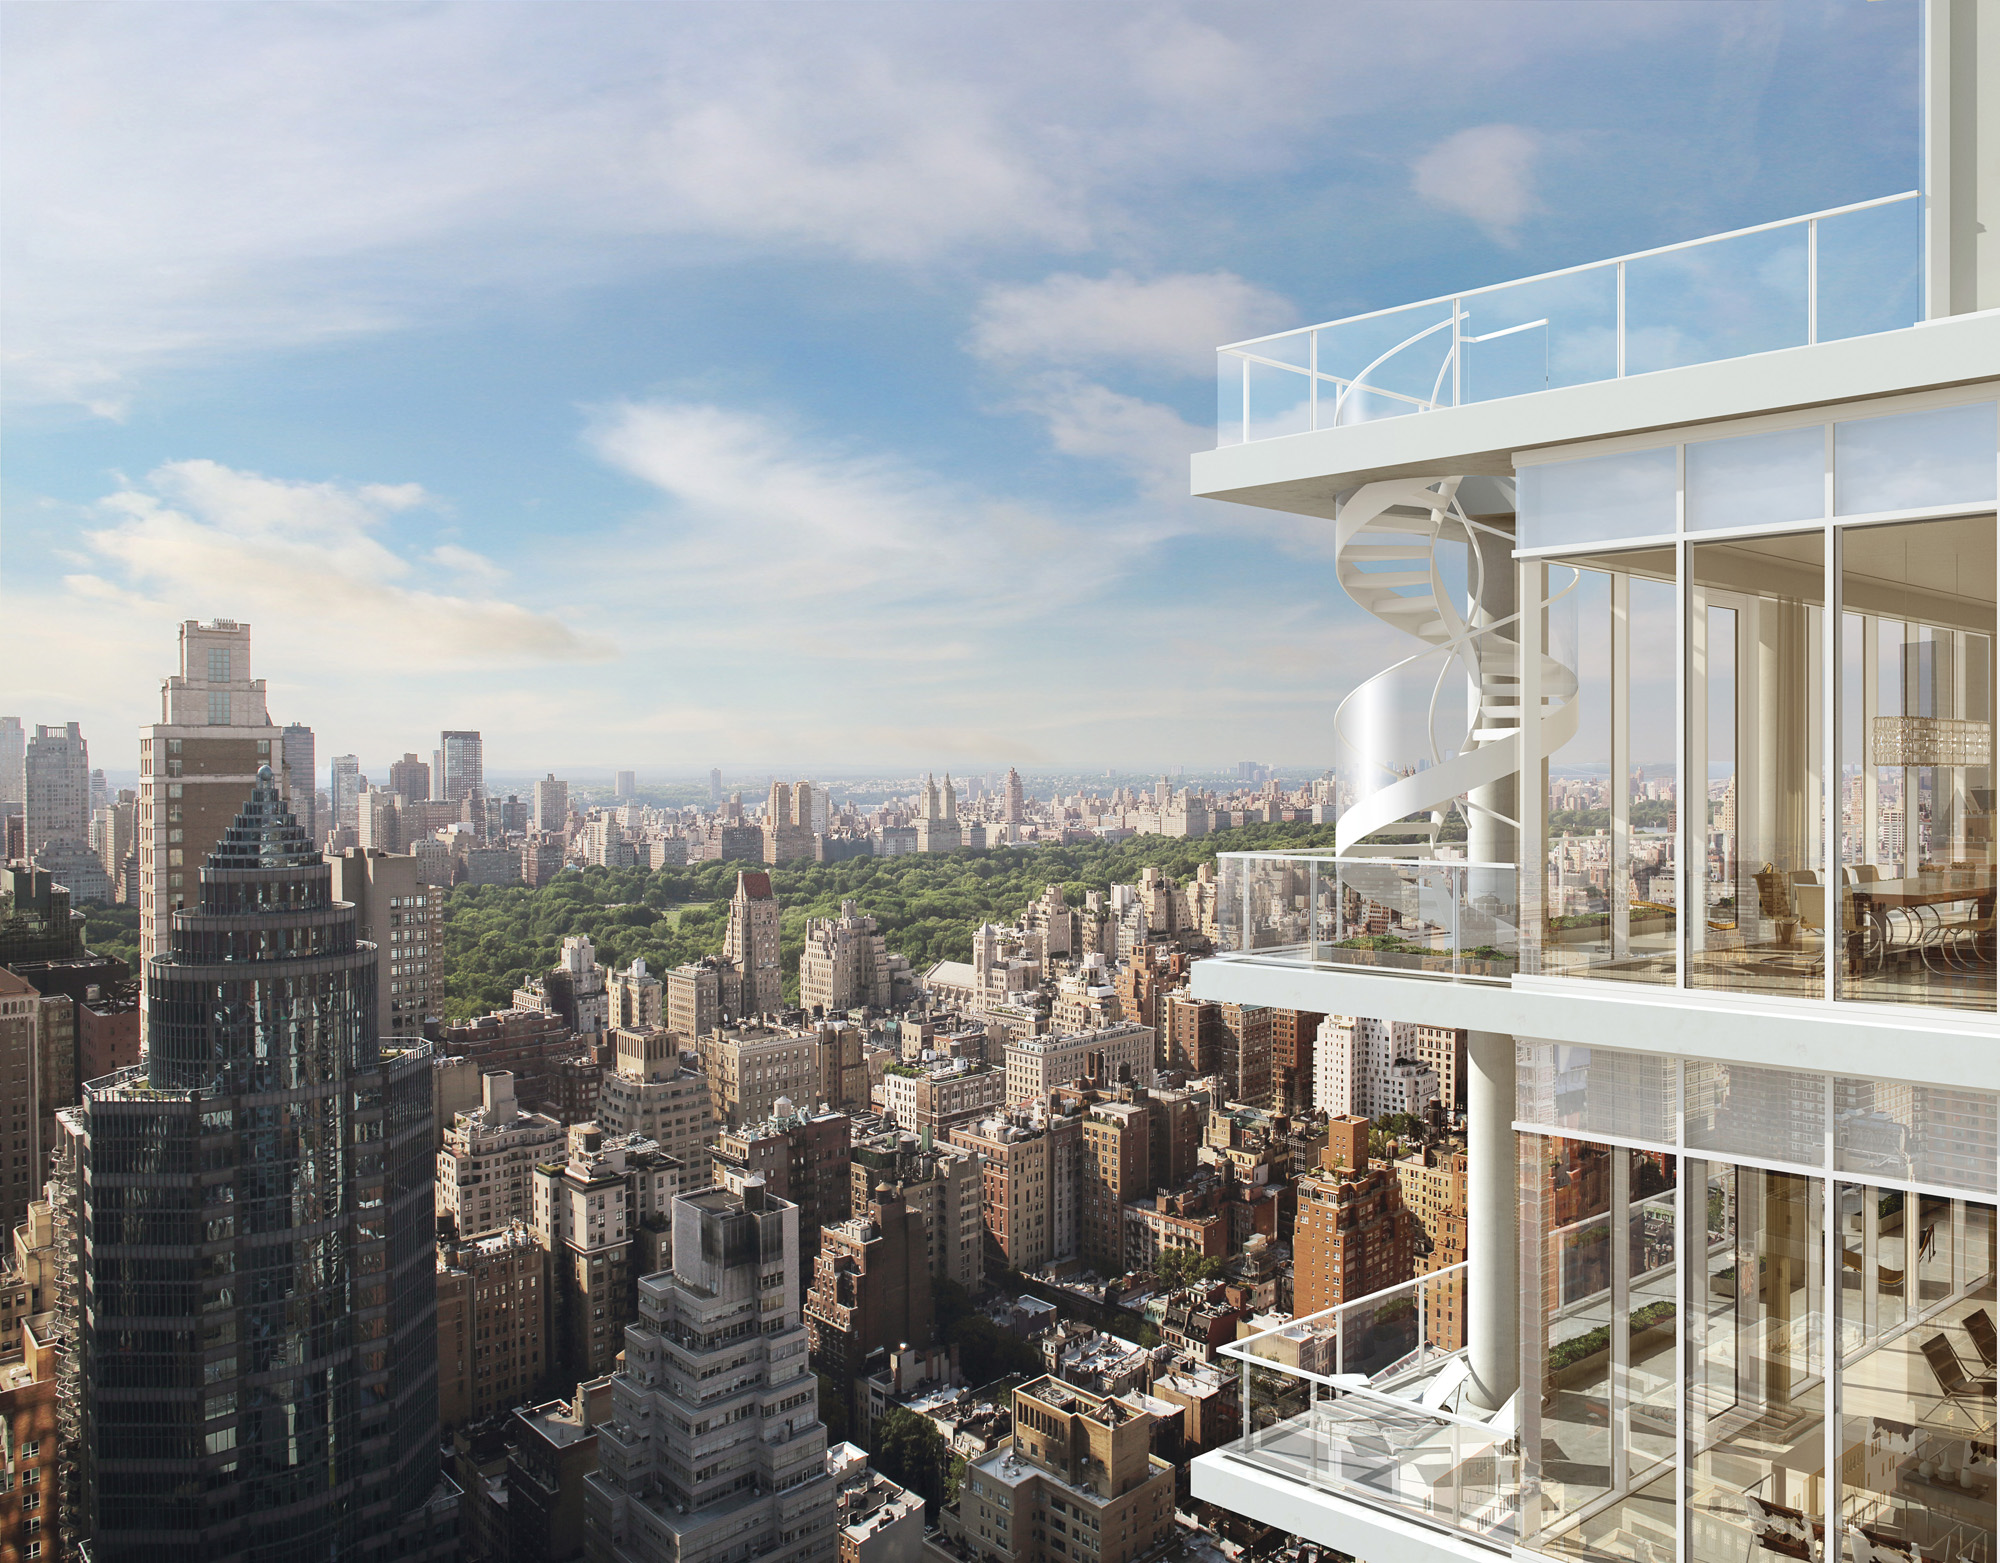 Macklowes Modest 59th Street Condo Launches Sales From 21M